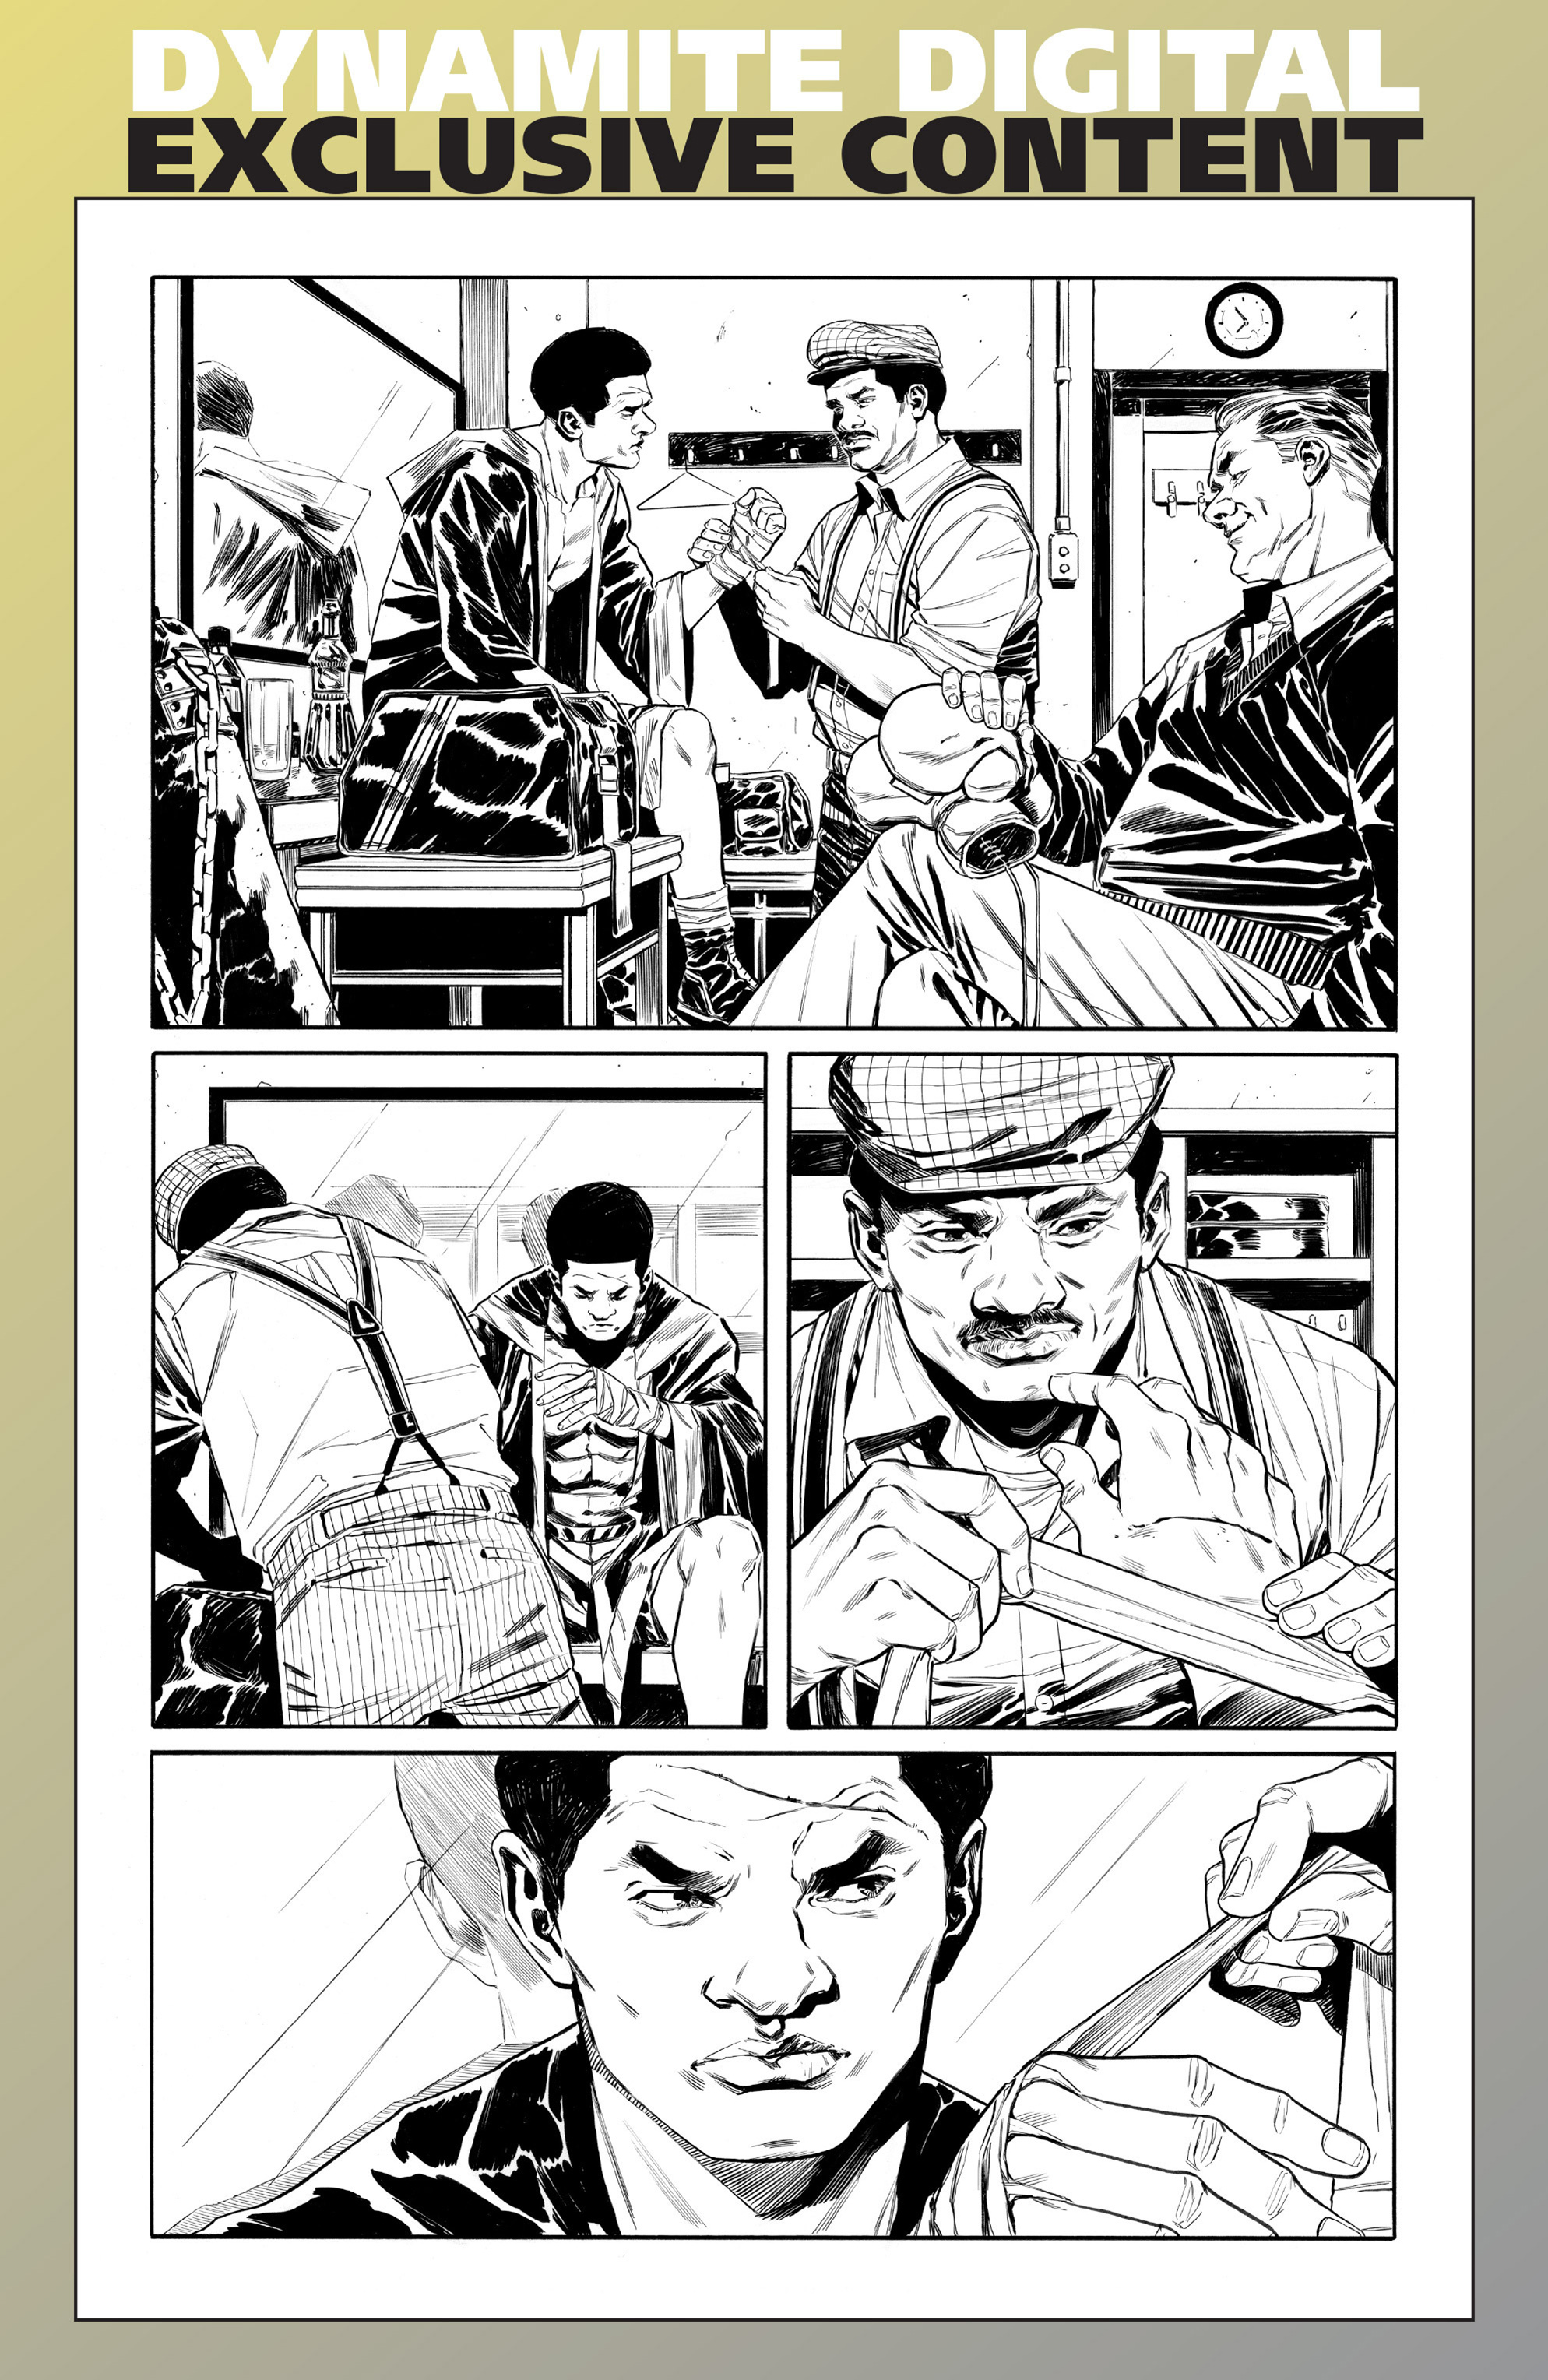 Read online Shaft comic -  Issue #1 - 33